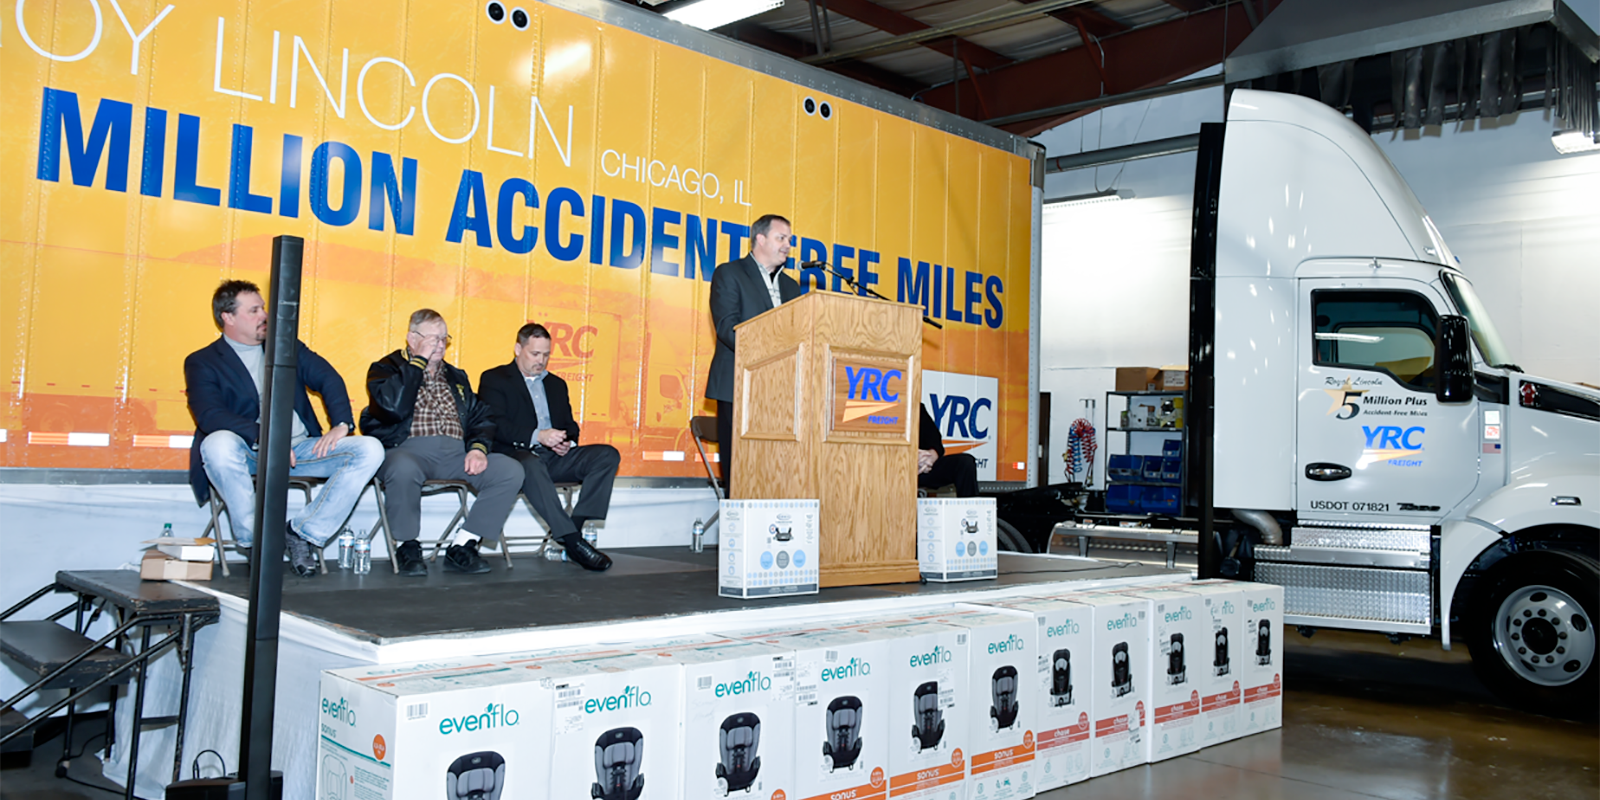 Roy Lincoln celebrated for 5 million accident free miles